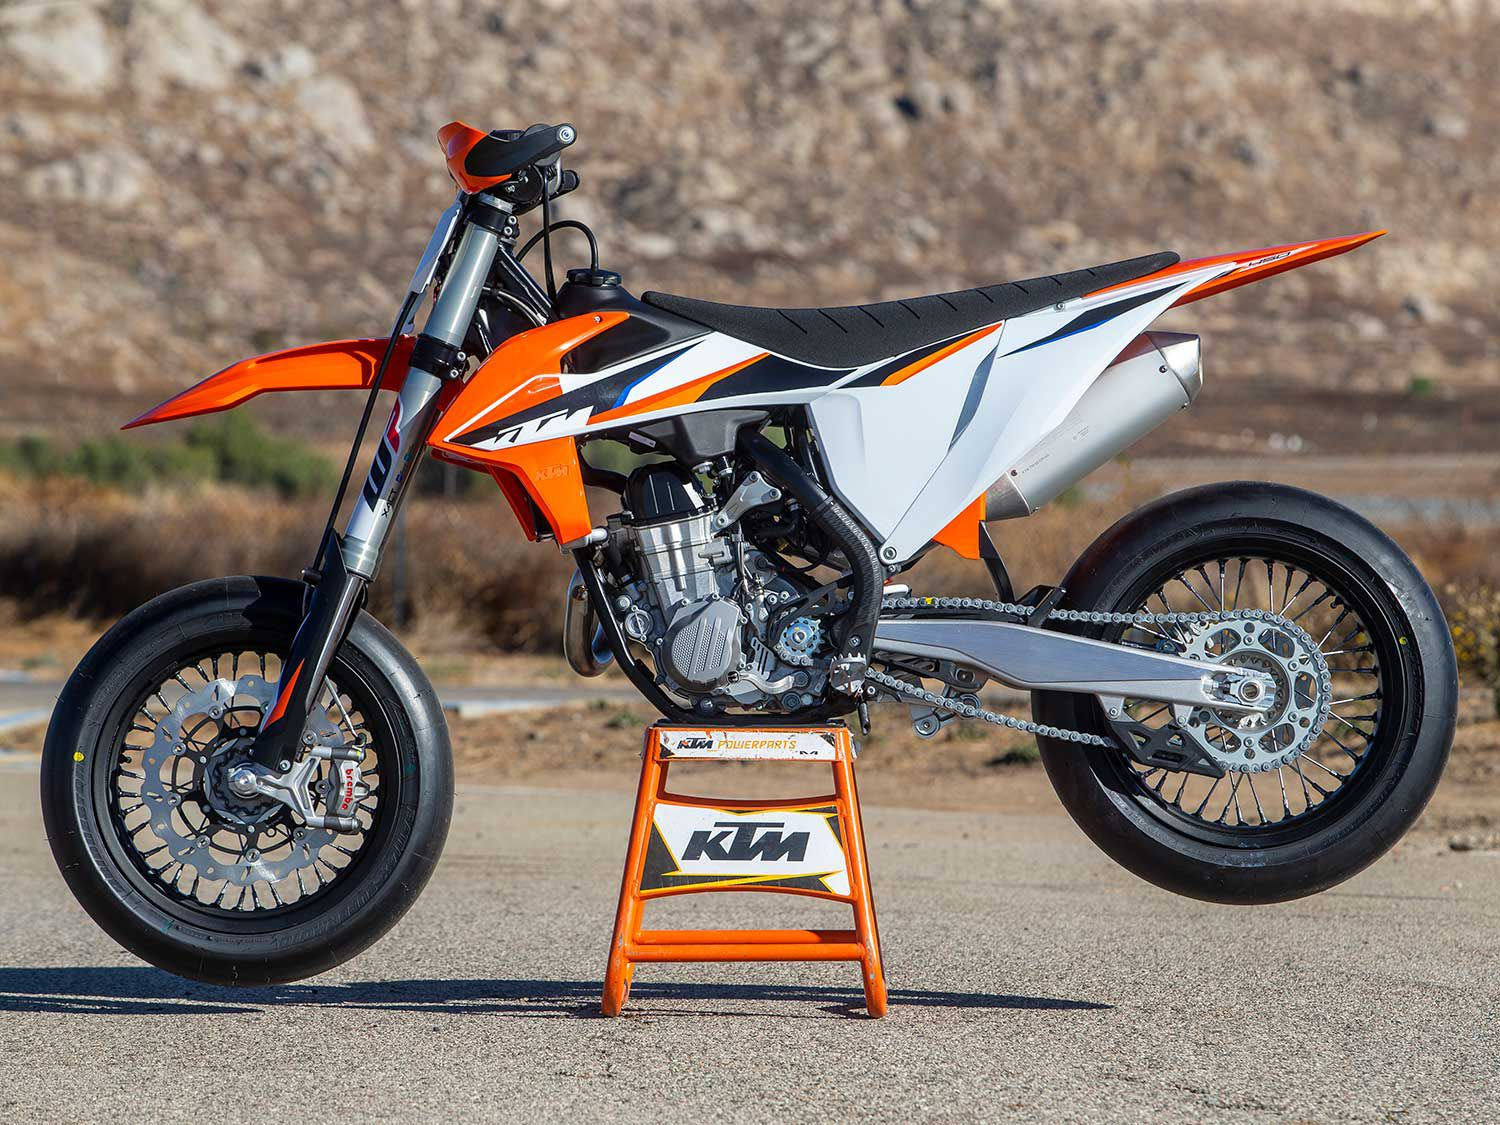 In typical KTM fashion, the 2021 450 SMR gets all of the powertrain and frame improvements that grace the 2021 450 SX-F motocross bike.